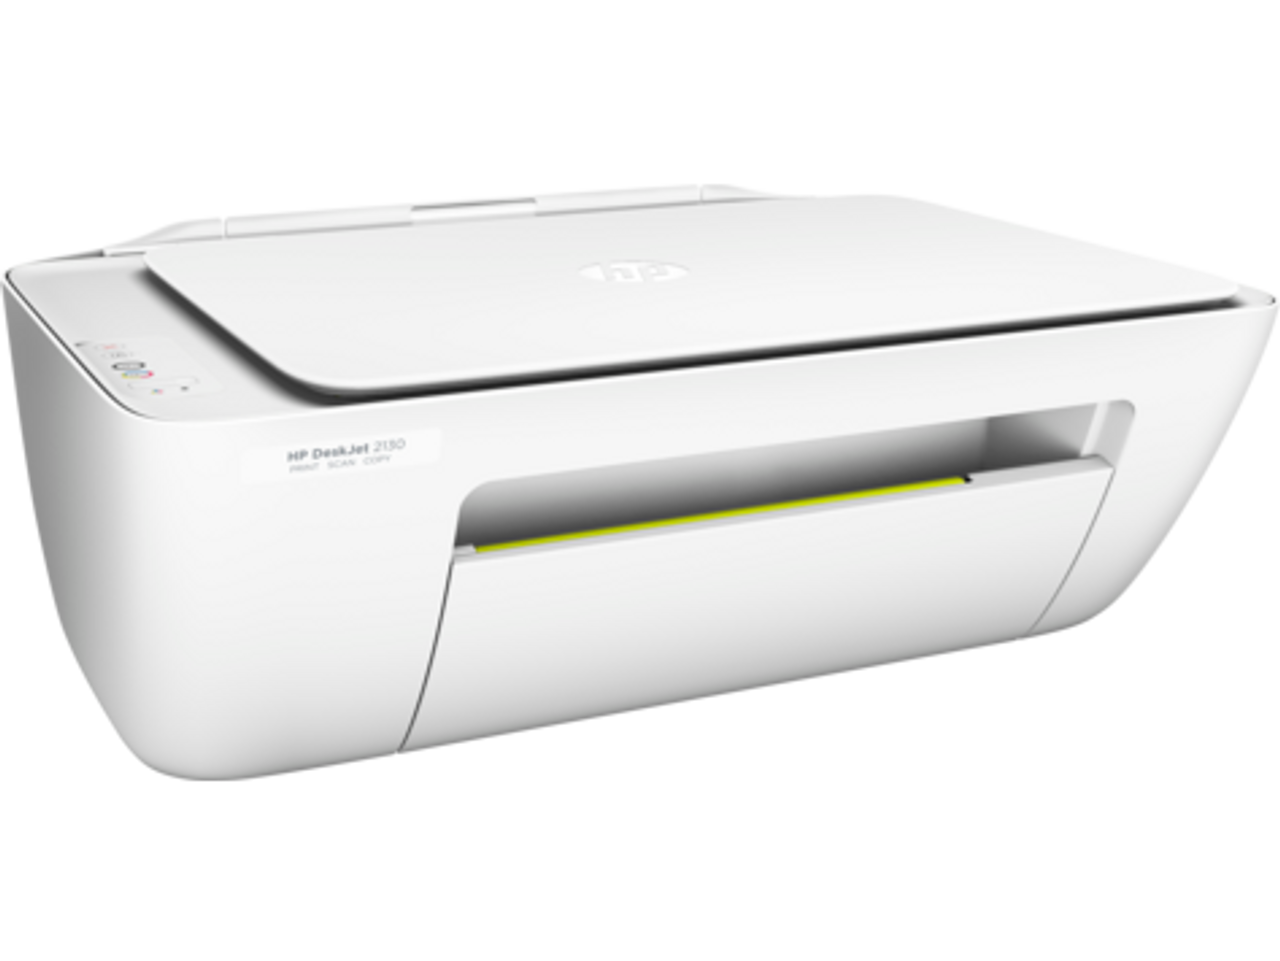 Printer HP DeskJet 2130 All-in-One (K7N77C) - 3in1 ( Print - Scan - Copy )